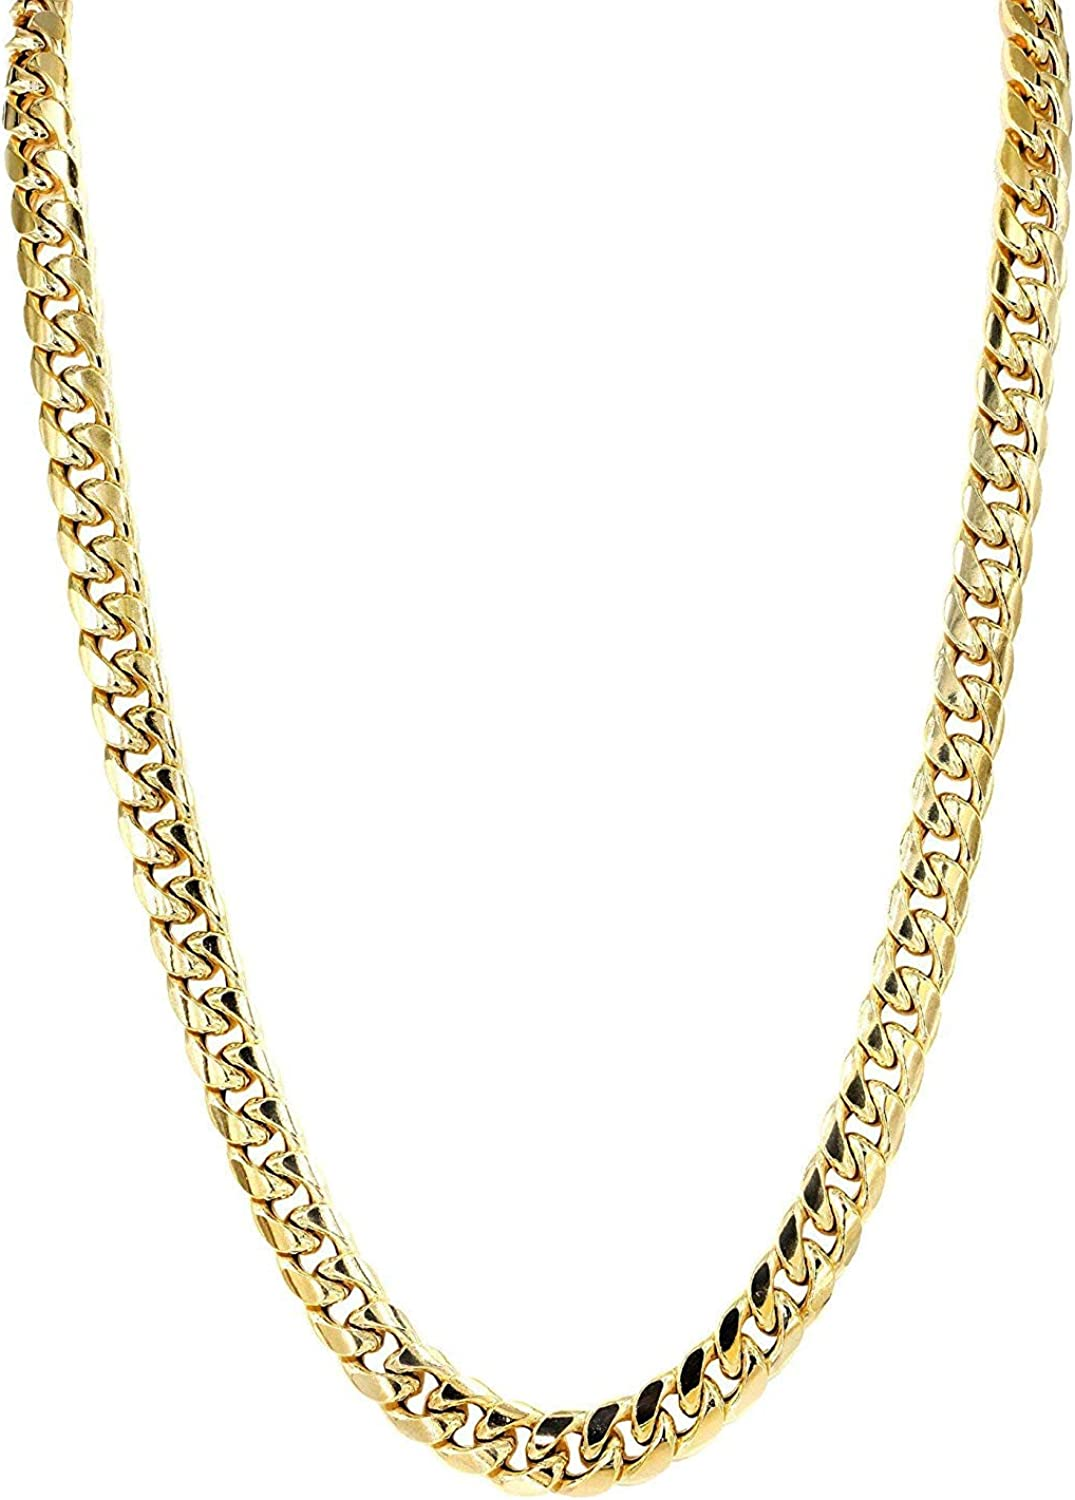 Daesar Women and Men Necklace Chain Stainless Steel Simple Elegant Rolo Chain Necklace Chain Charms